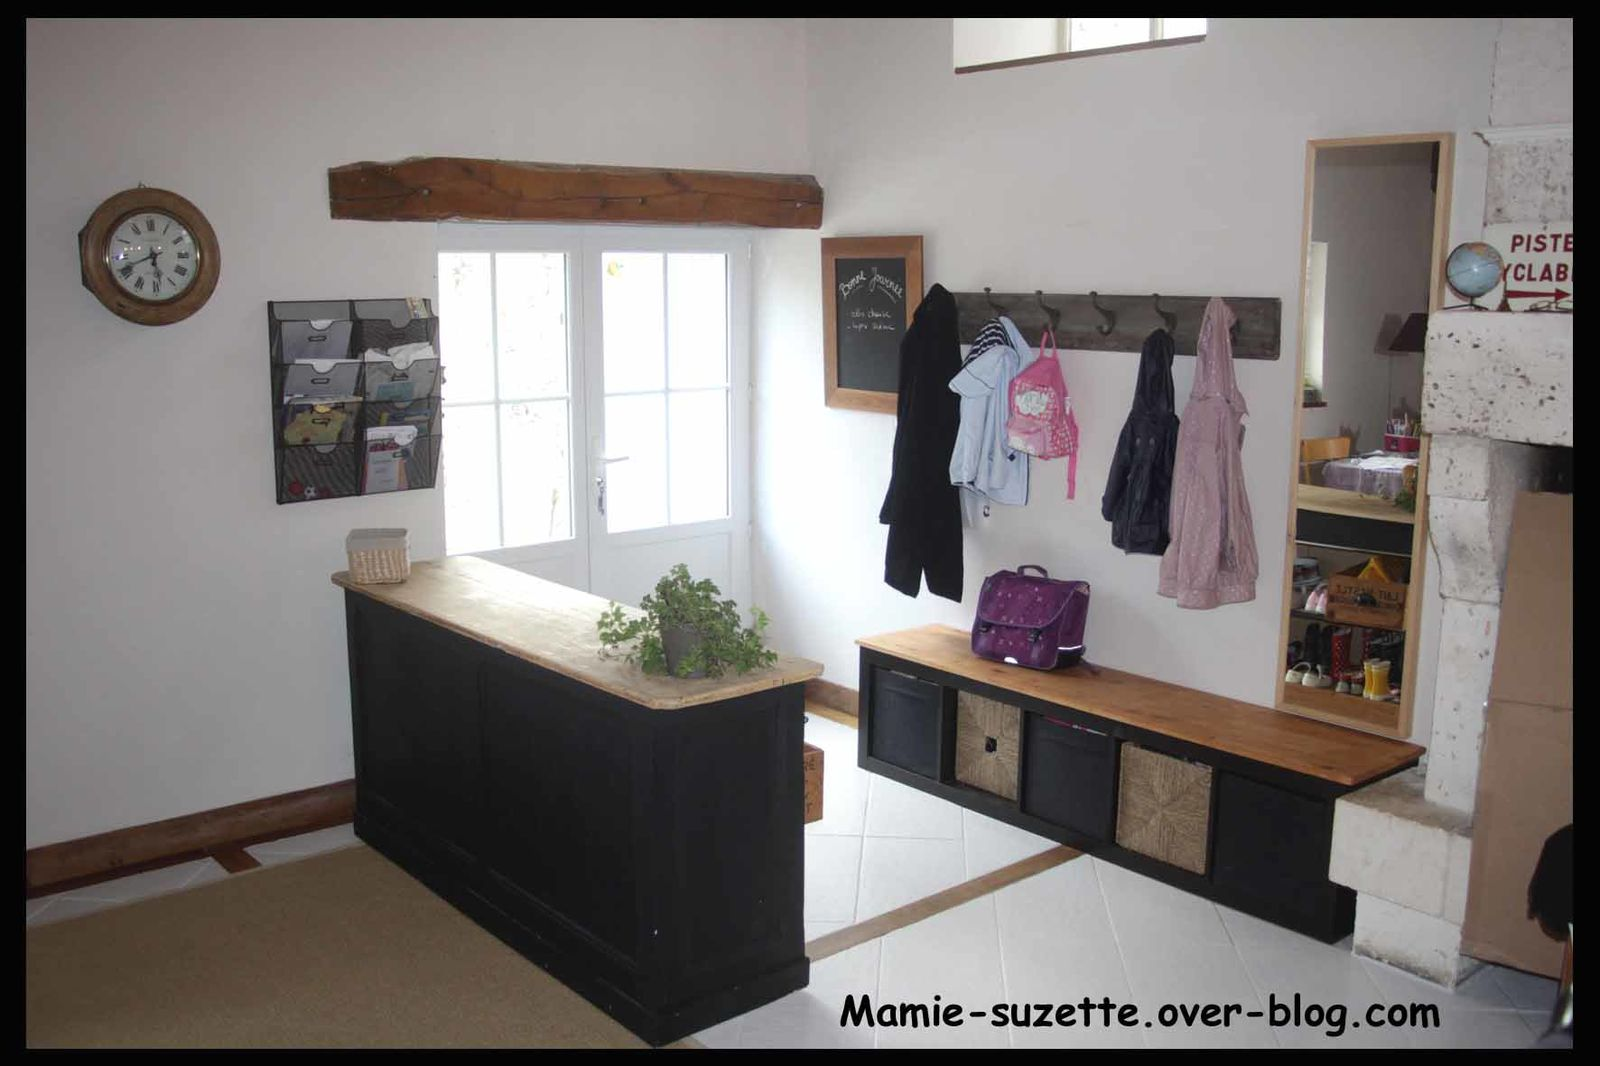 Am nagement de l 39 entr e le blog de mamie for Meuble de separation cuisine